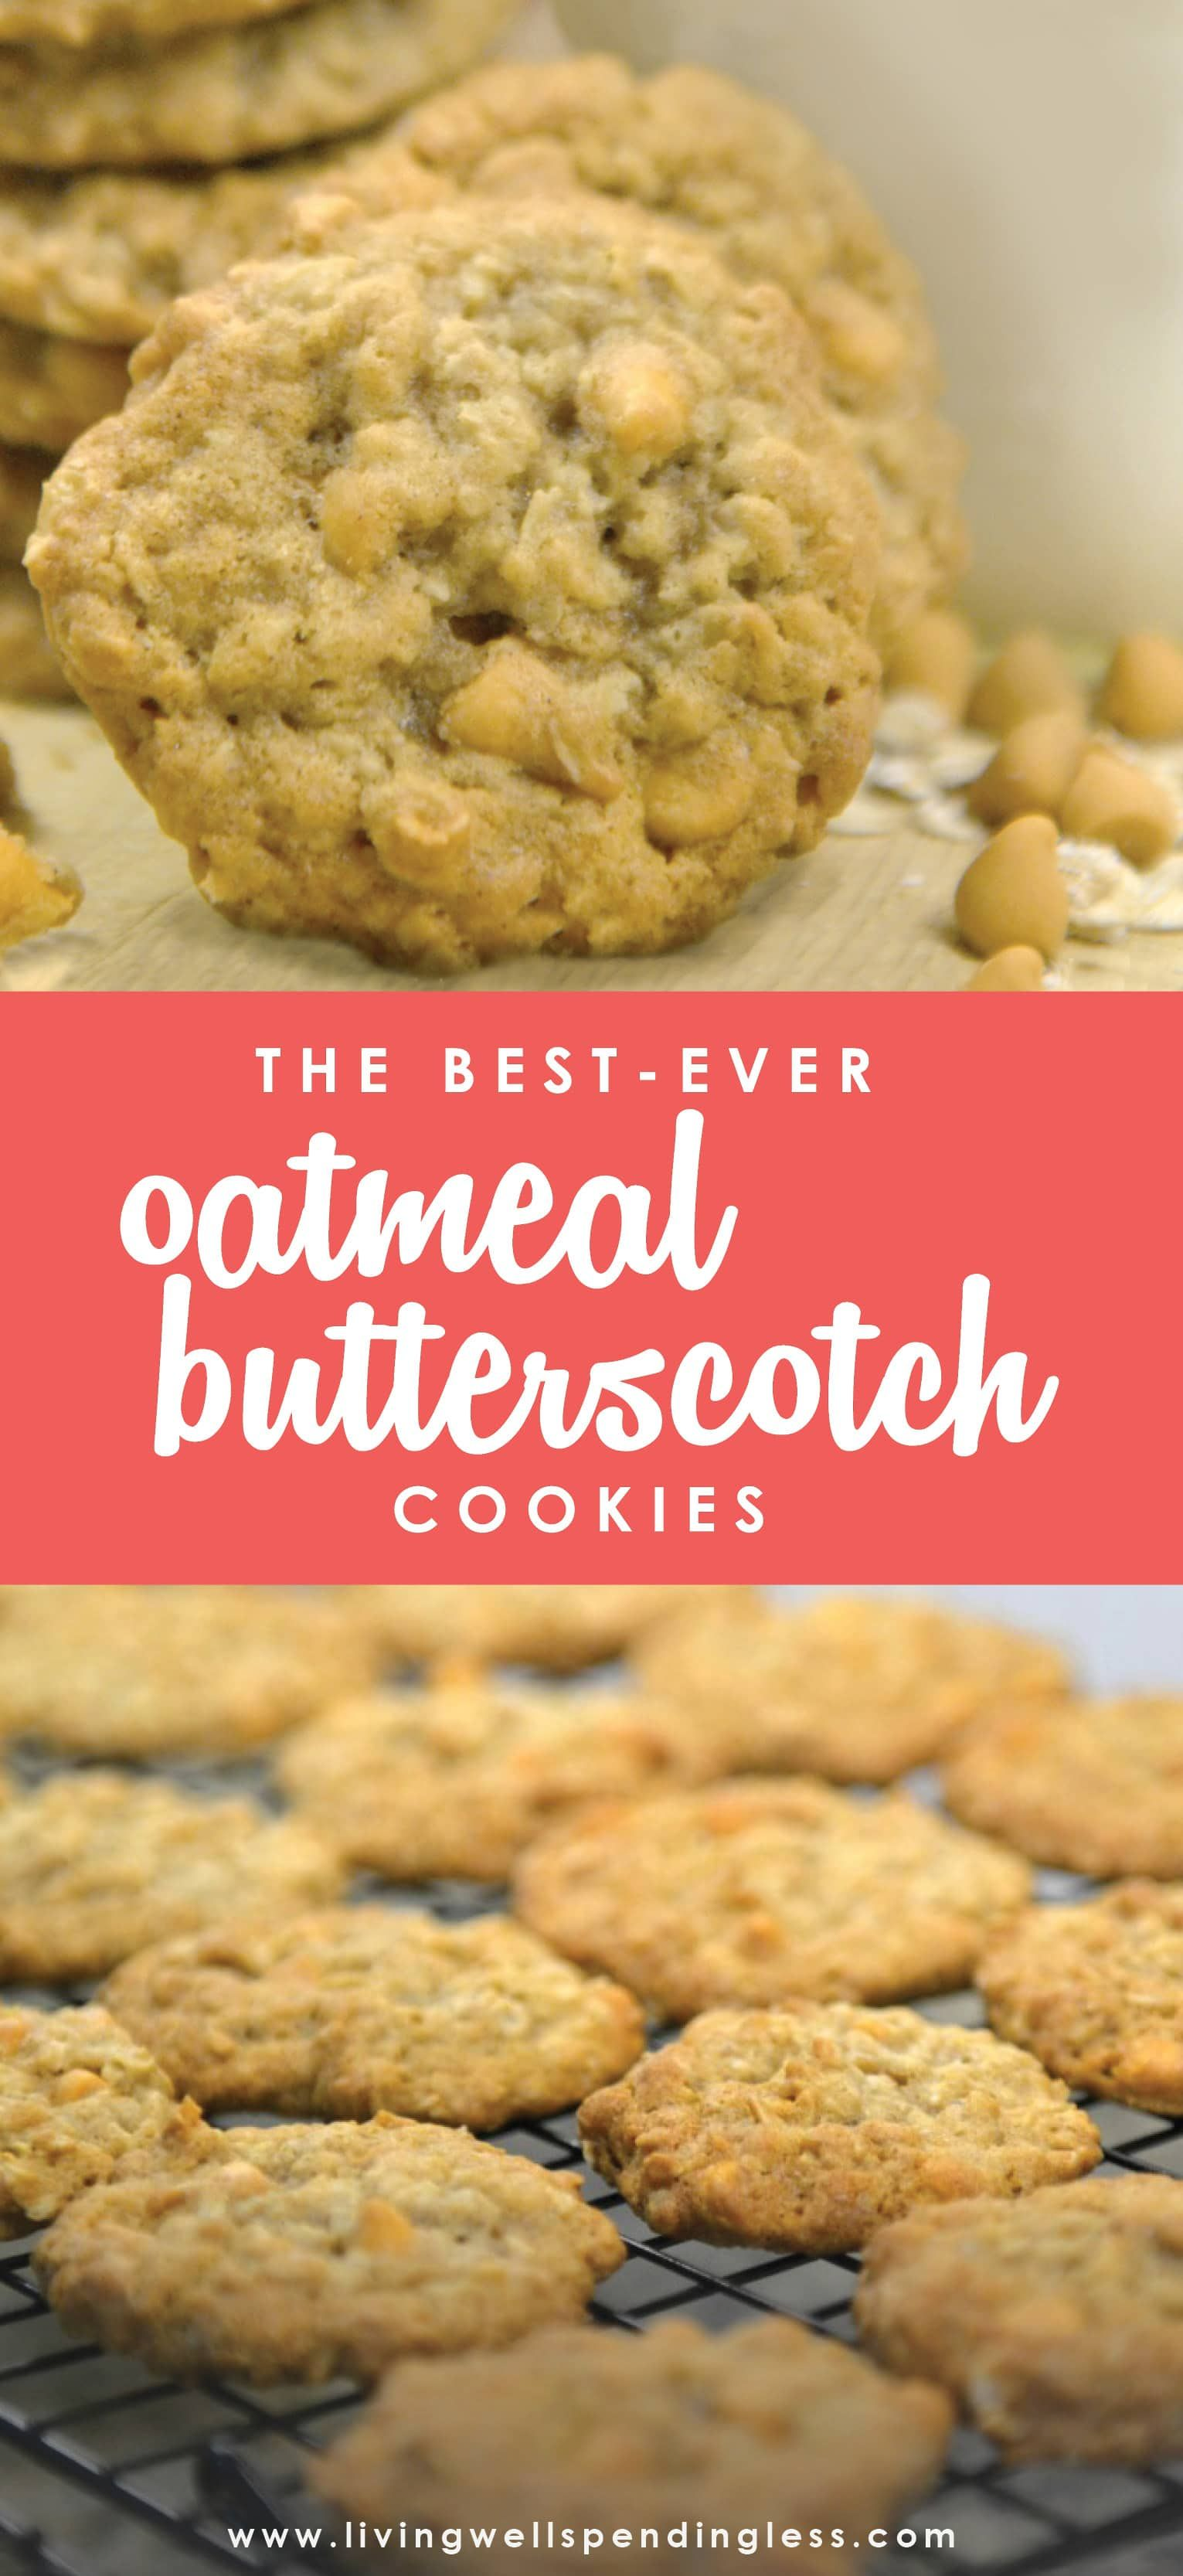 Best Ever Oatmeal Butterscotch Cookies Recipe Food Fruits